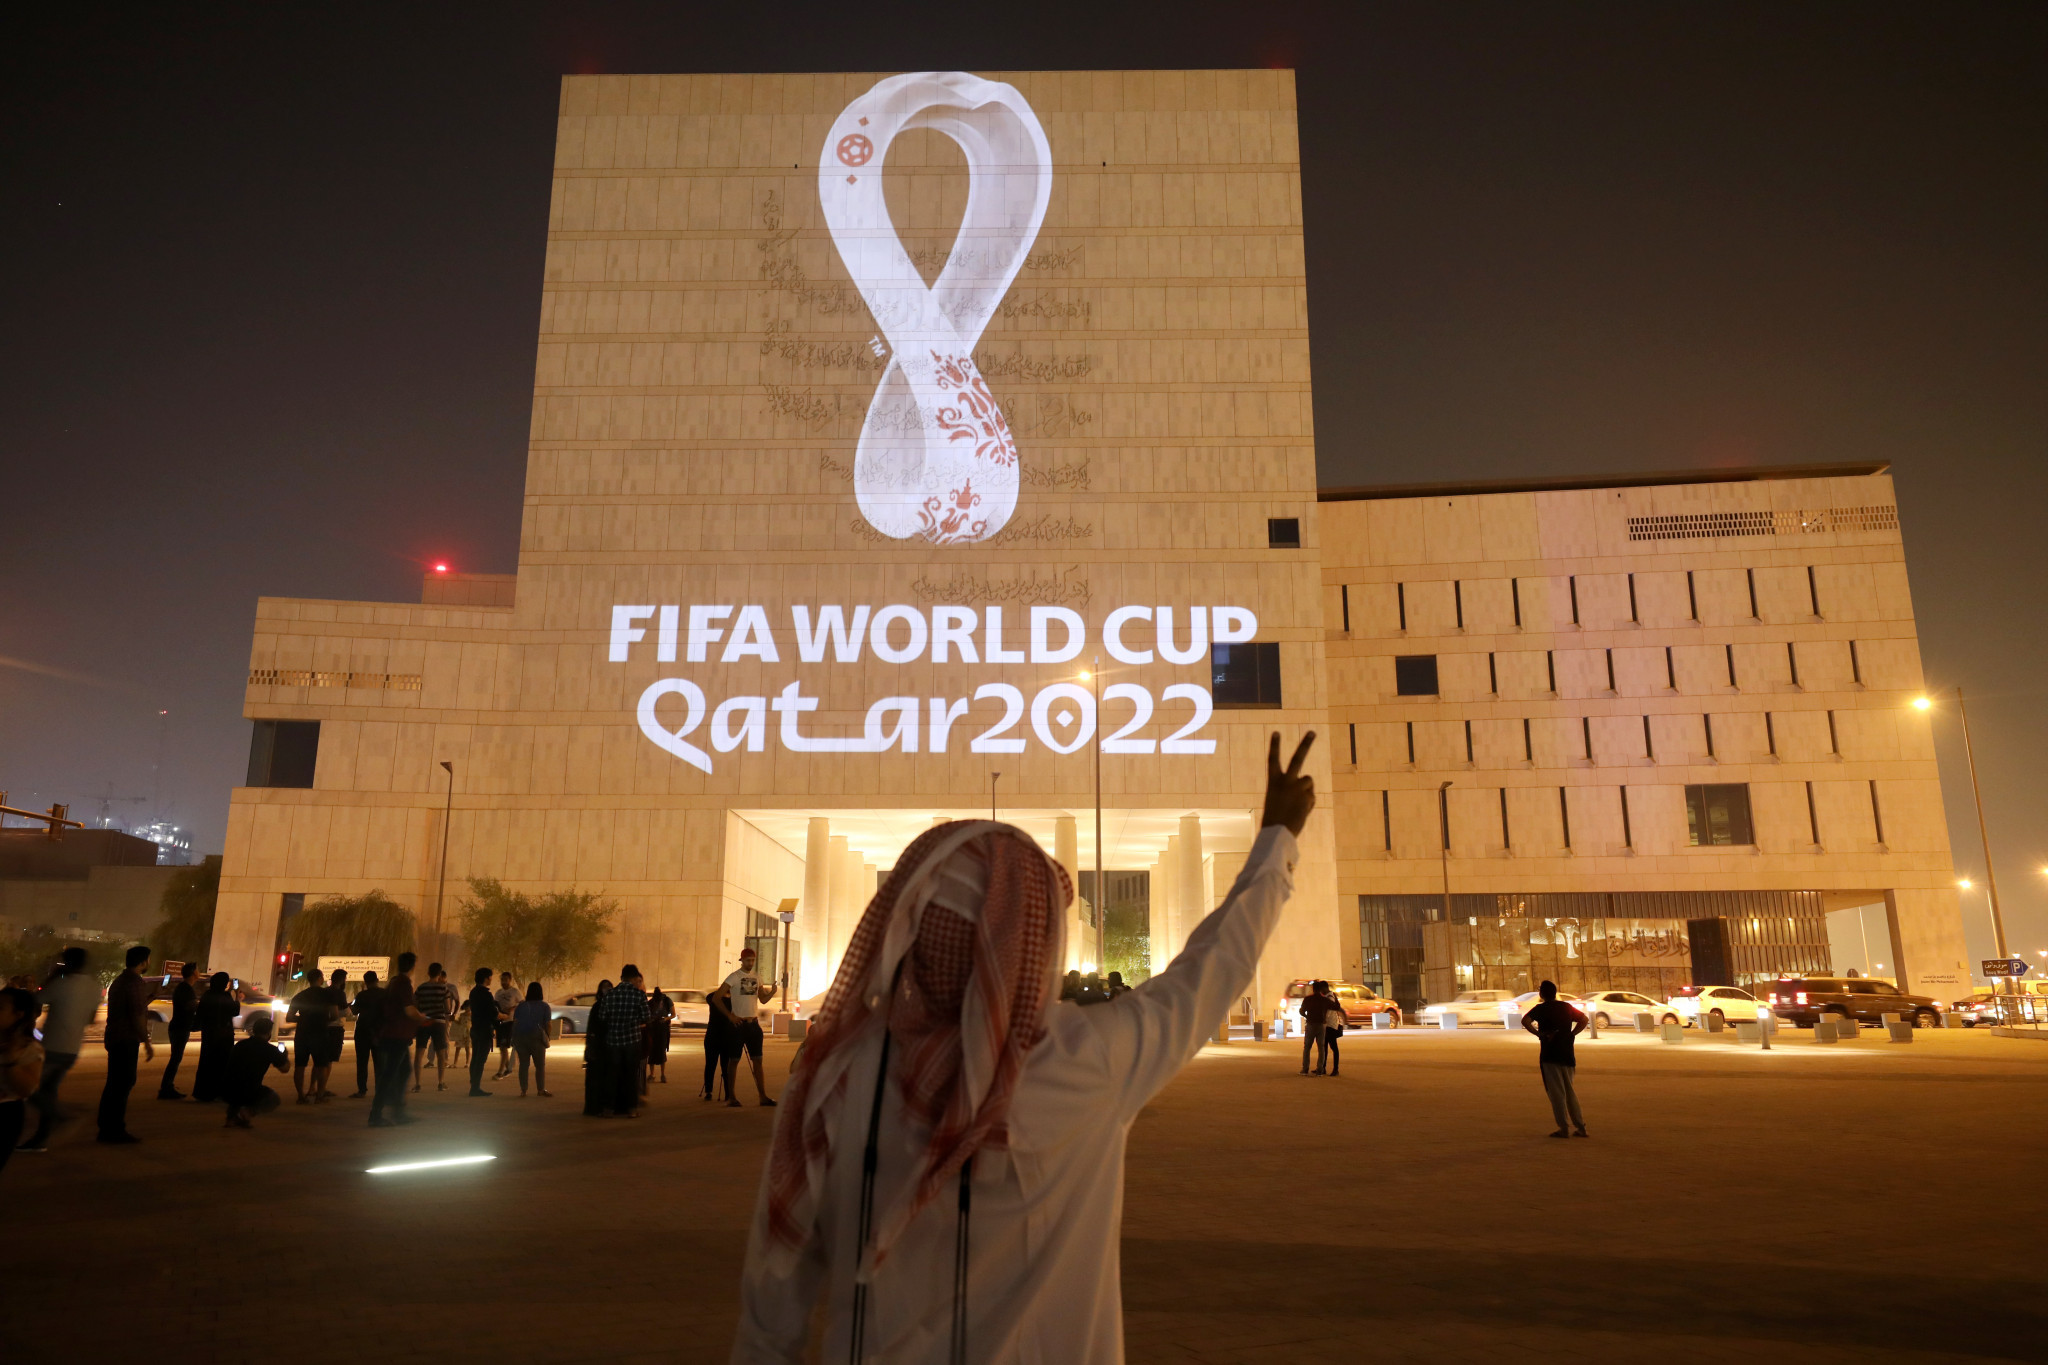 There are 1,000 days to go until the 2022 FIFA World Cup ©Getty Images